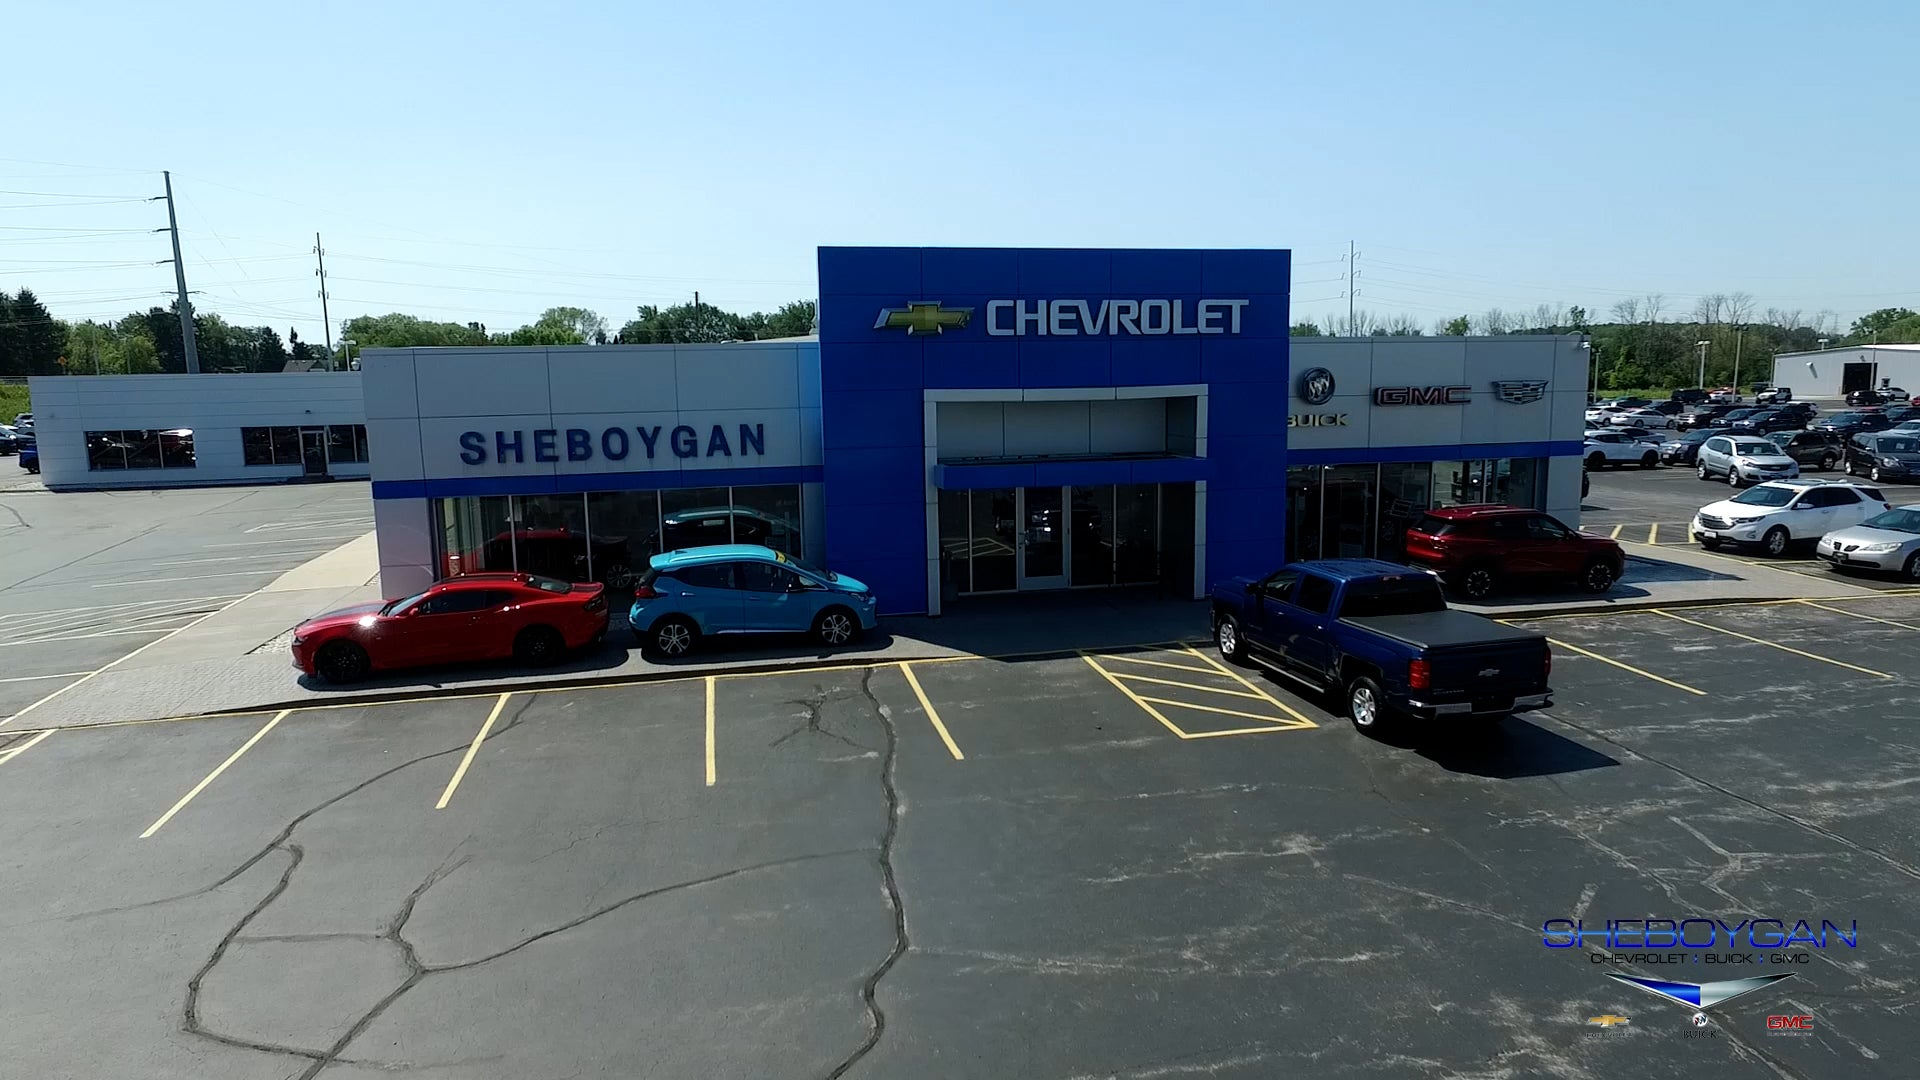 Sheboygan Chevrolet Dealer In Sheboygan Wi Oostburg Plymouth Haven Chevrolet Dealership Wisconsin